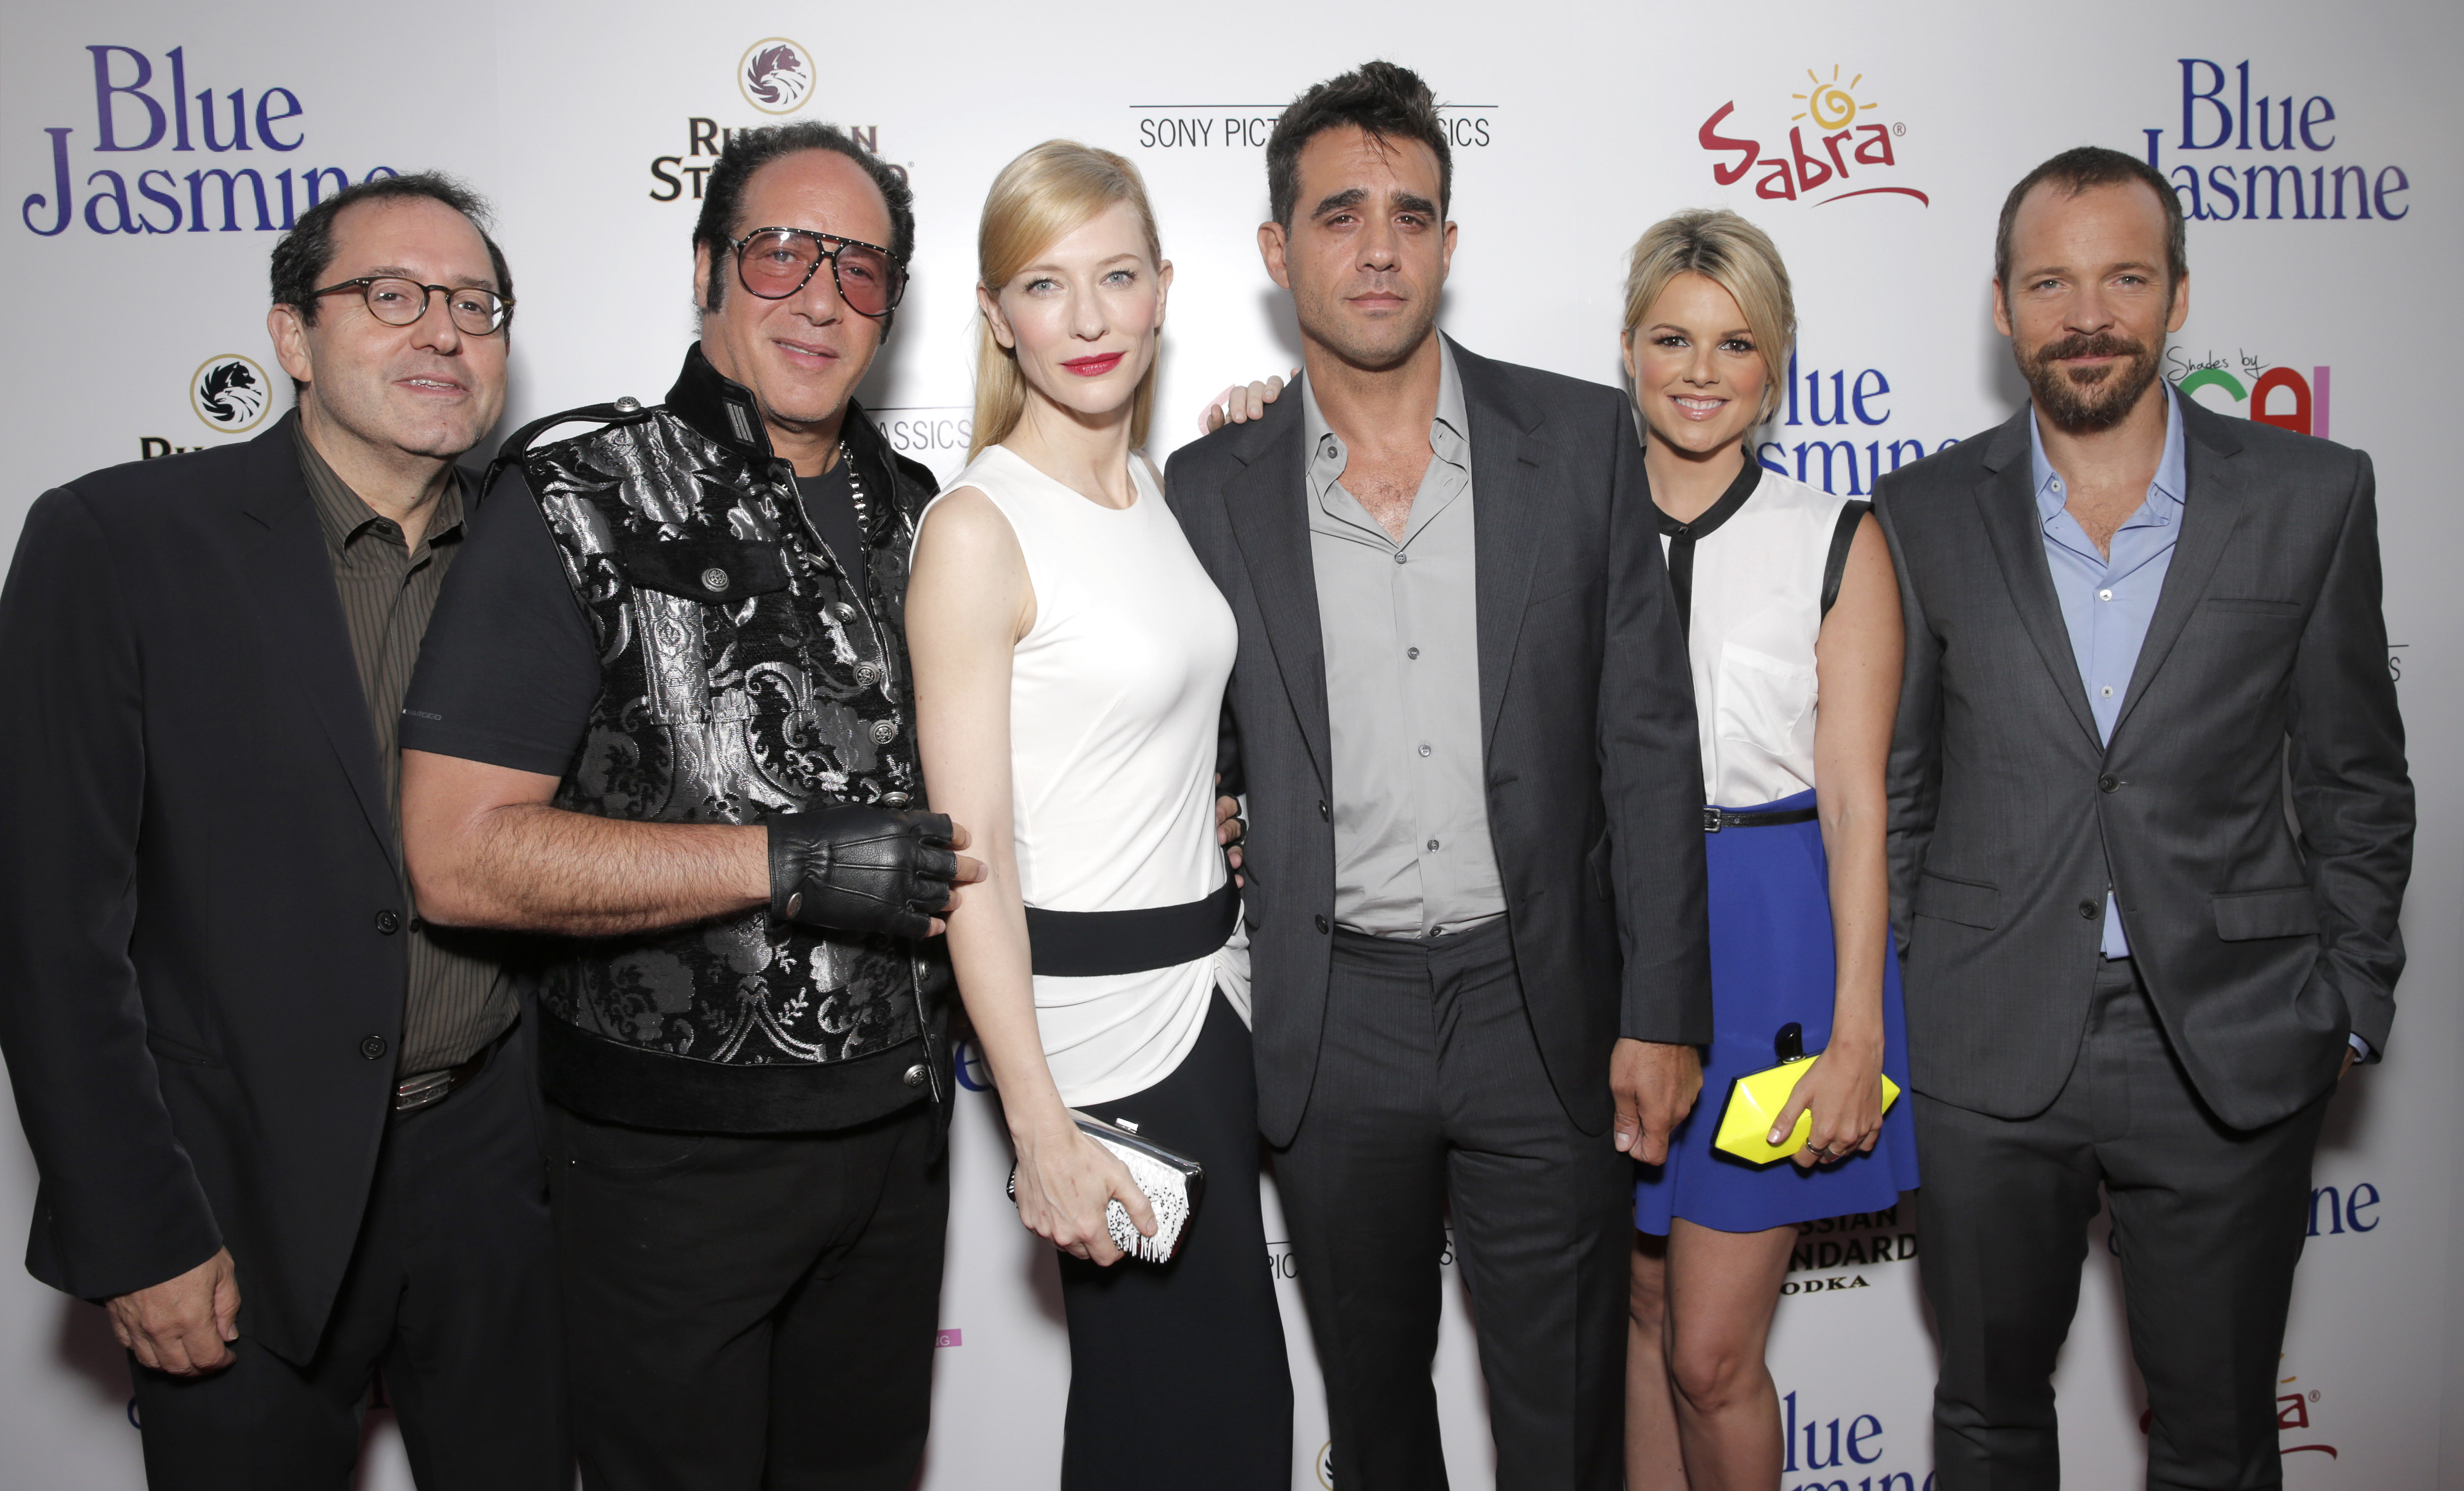 Michael Barker, Andrew Dice Clay, Cate Blanchett, Bobby Cannavale, Ali Fedotowsky, Peter Sarsgaard at the Beverly Hills premiere of Woddy Allen's Blue Jasmine